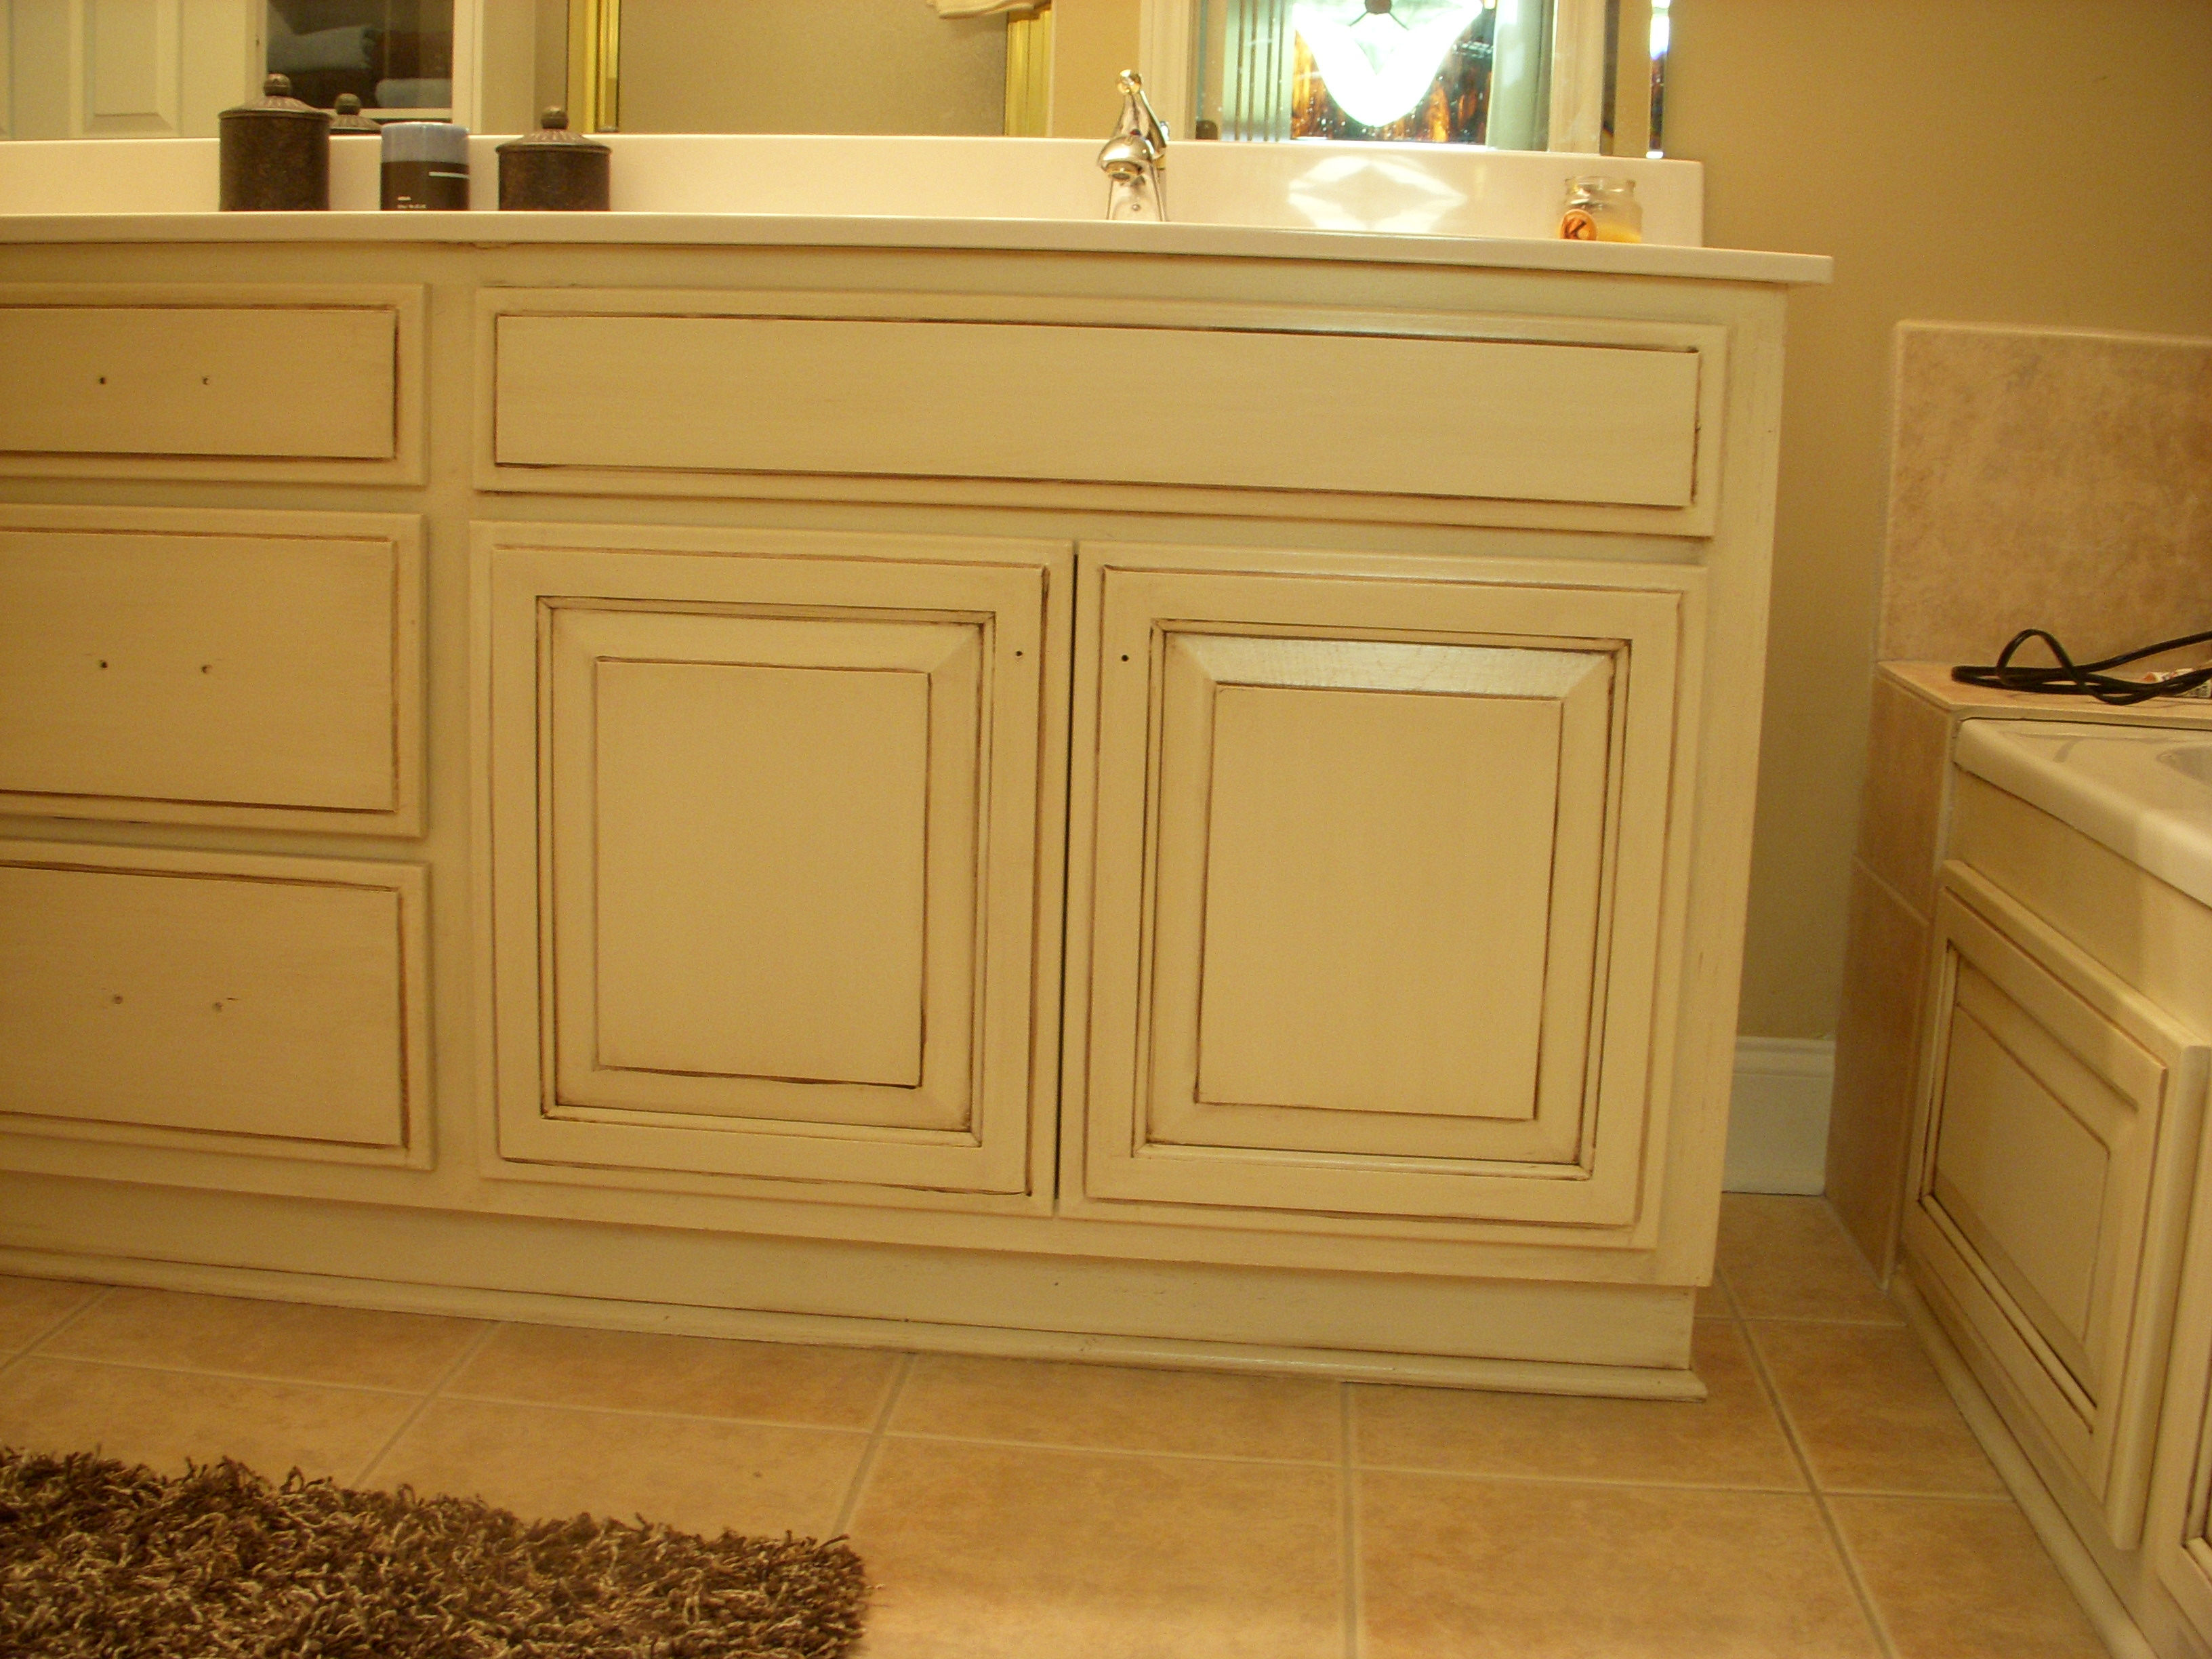 Cream Cabinets With Chocolate Glaze Painted Oak Cabinets